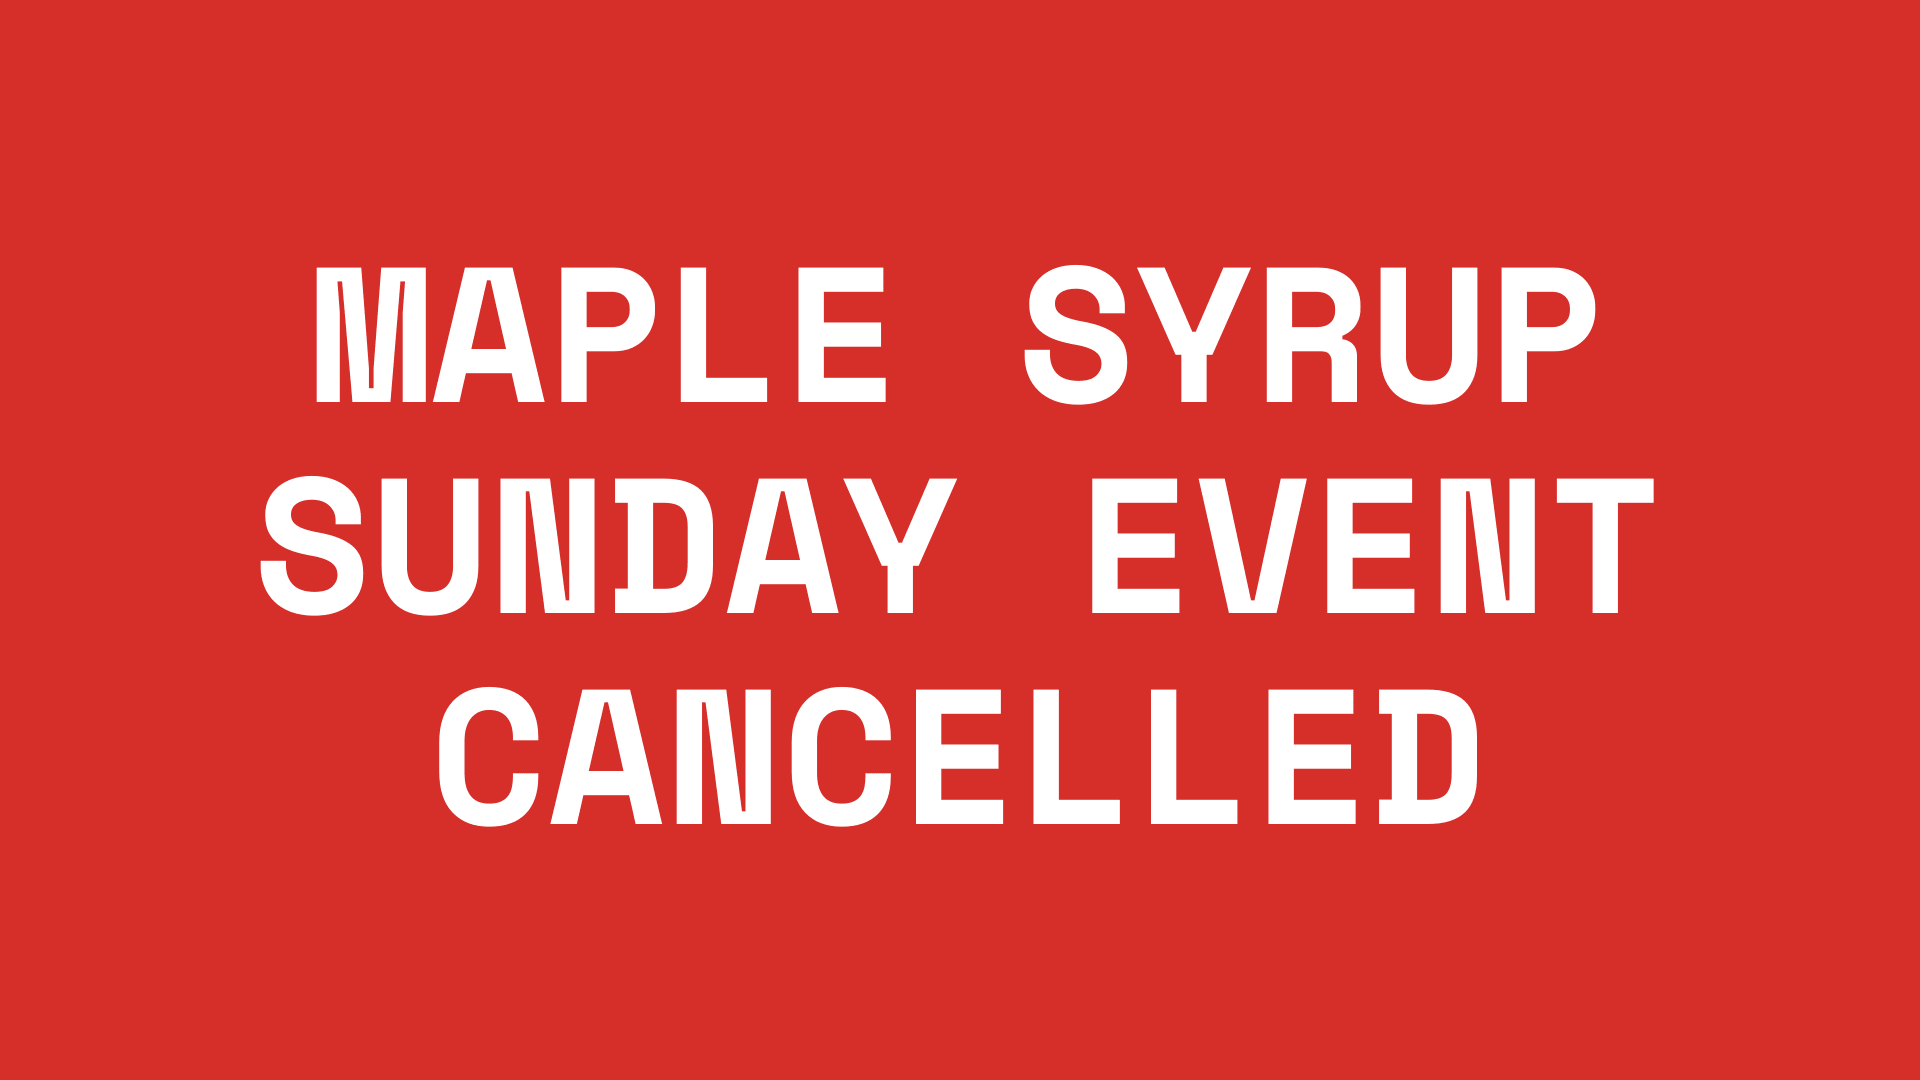 Maple Syrup Sunday Event Cancelled